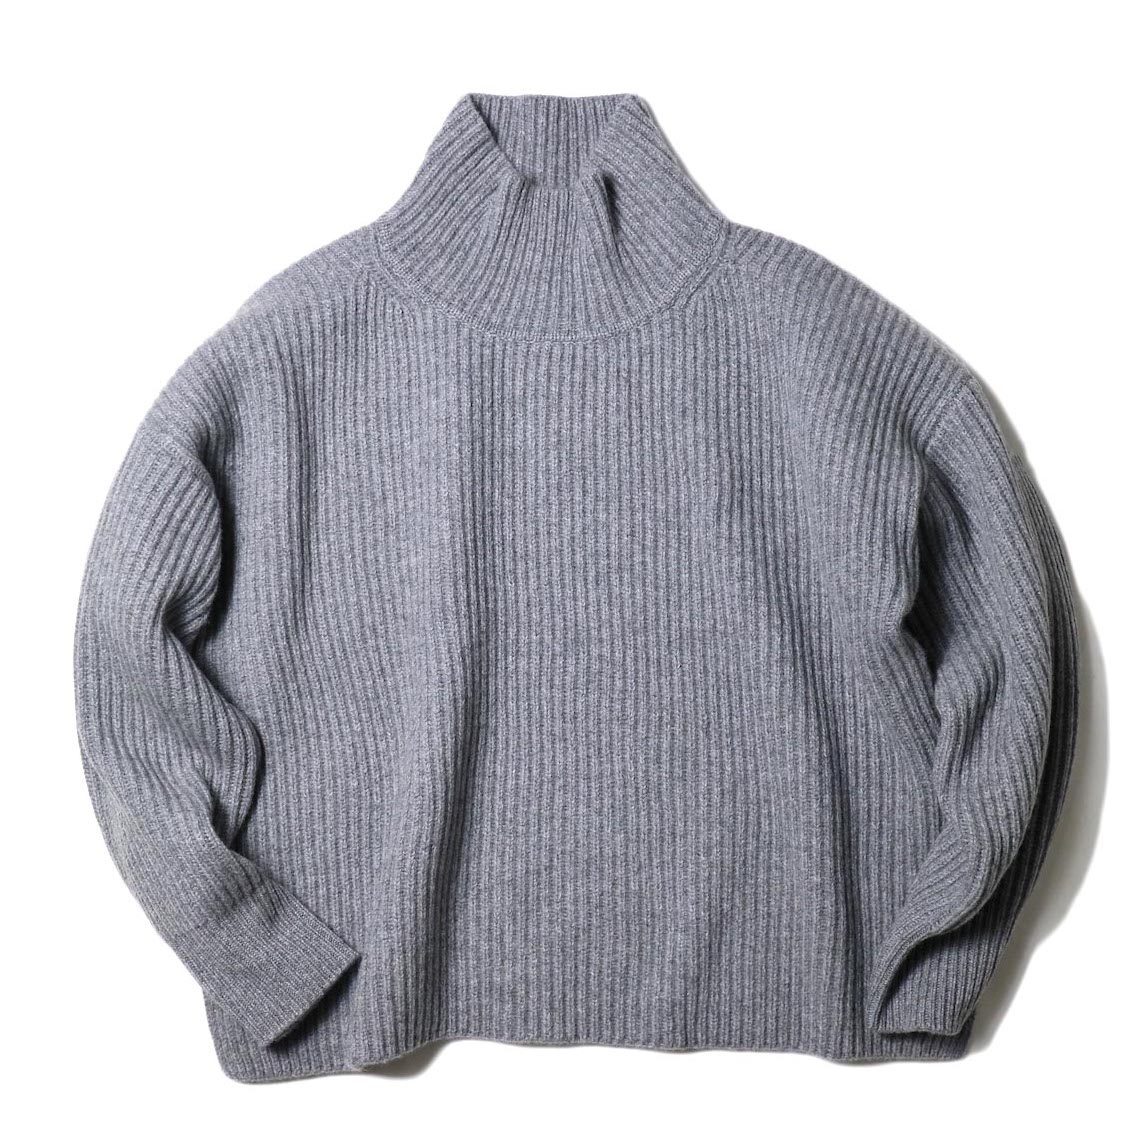 YLEVE / EXTRAFINE MERINO WOOL RIB KN TURTLE (grey)